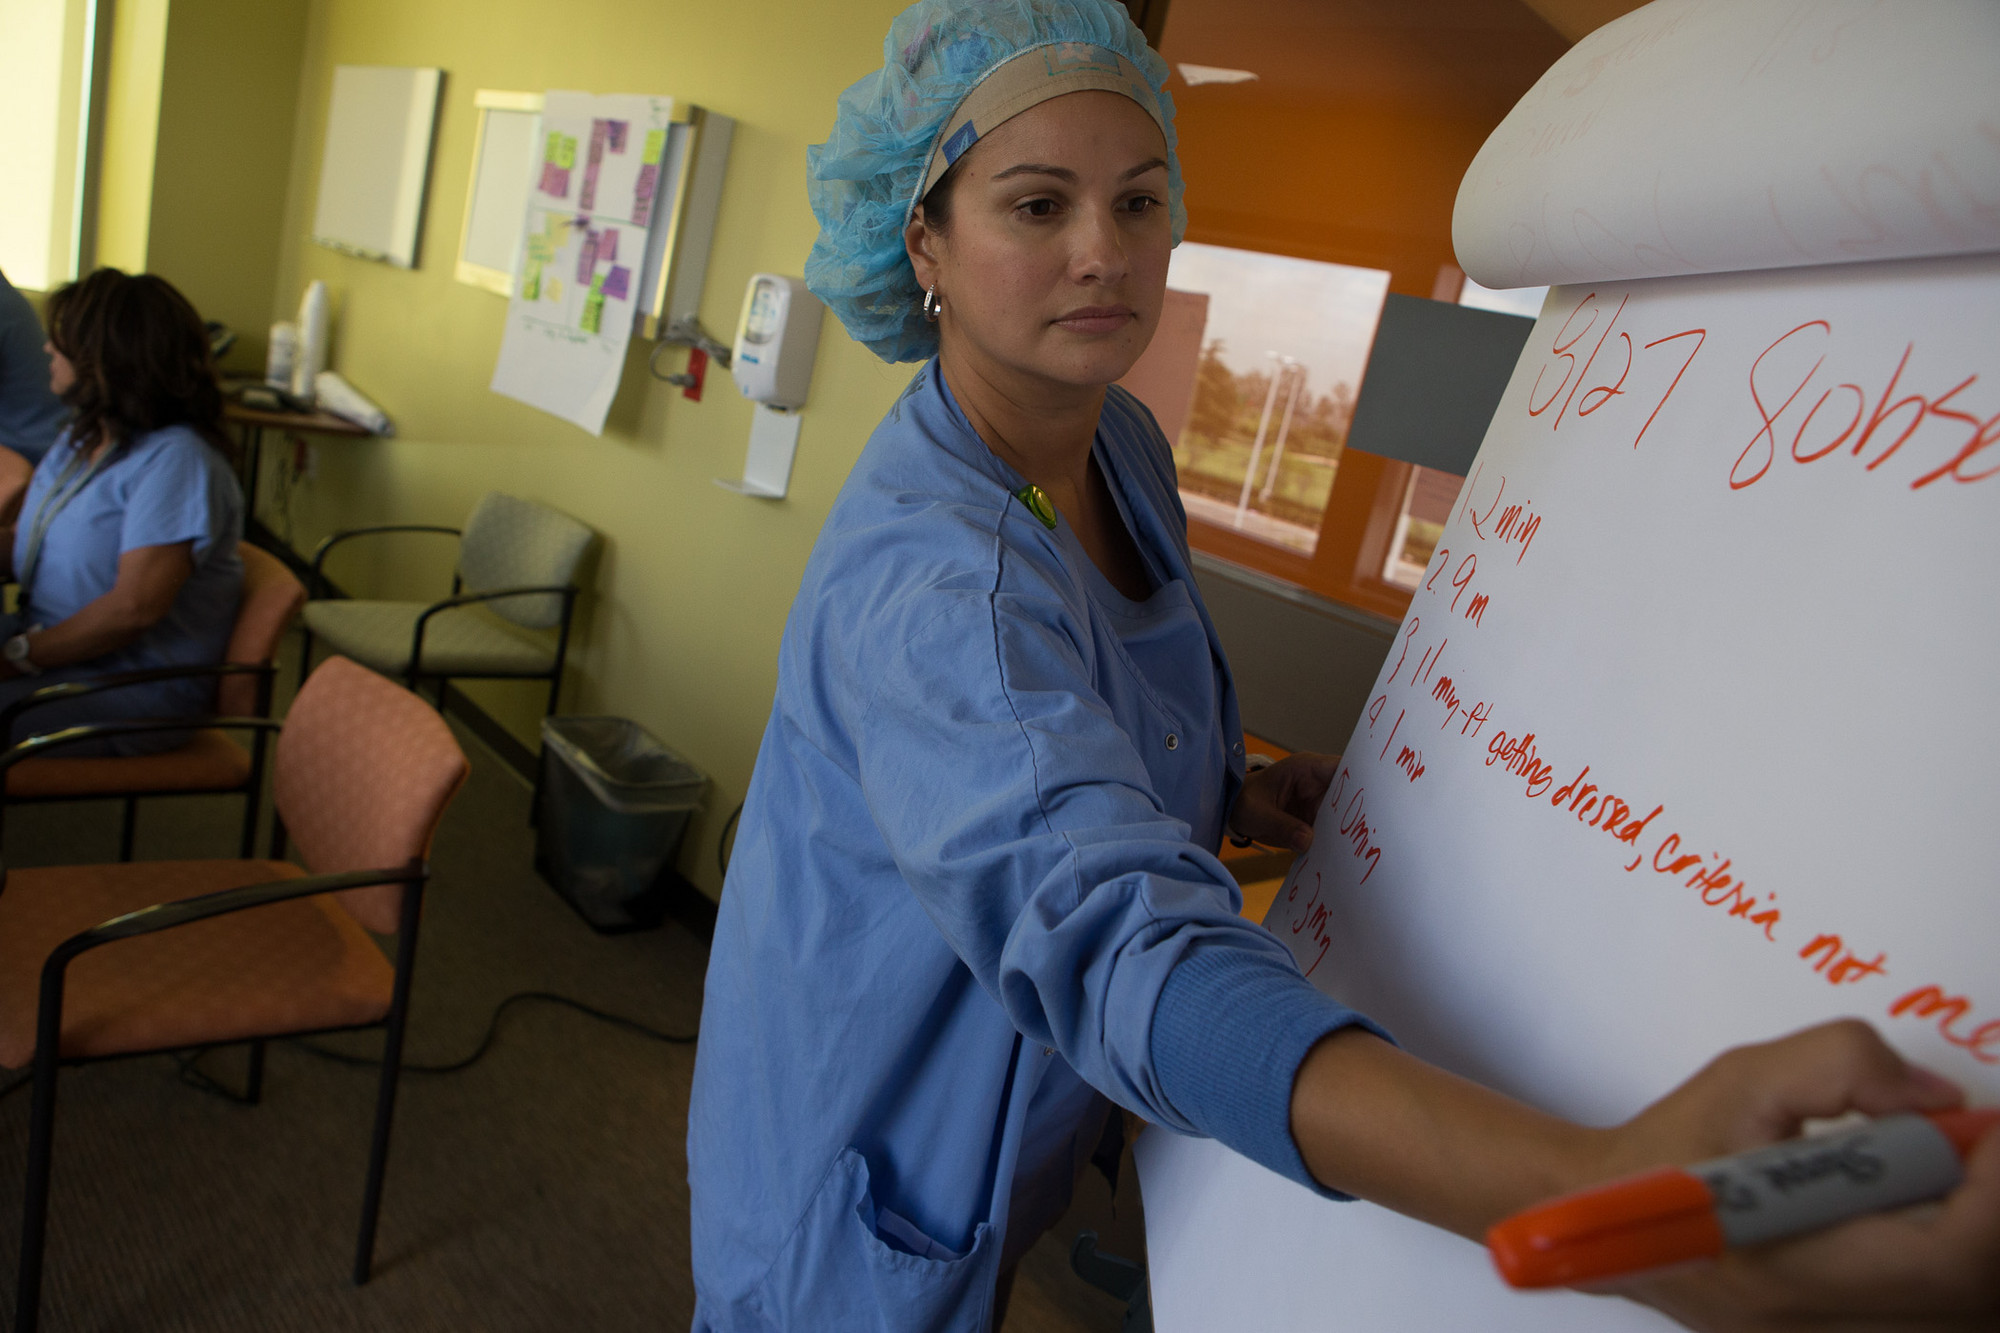 Health care worker in blue hairnet writing on a flip chart